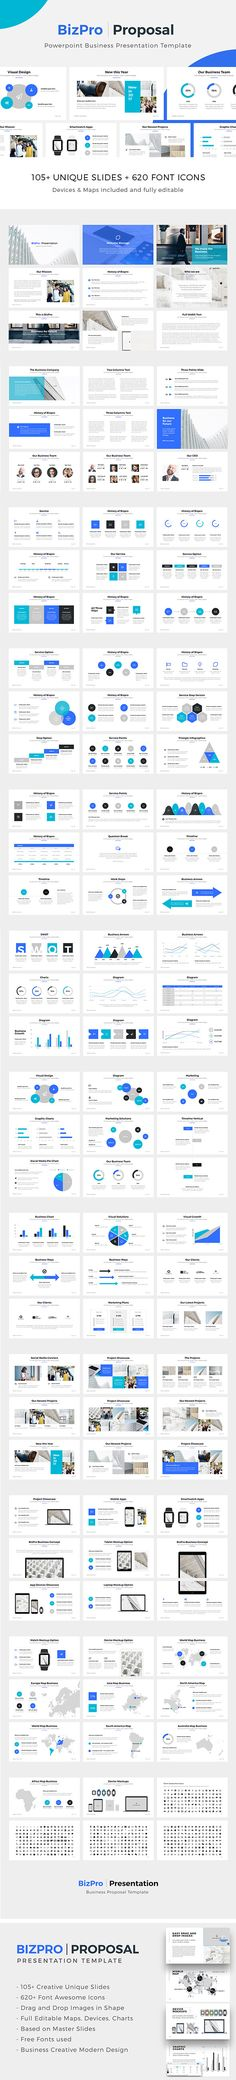 Commercial Proposal Format Amusing Commercial Proposal Template #09  Commercial Proposal  Pinterest .